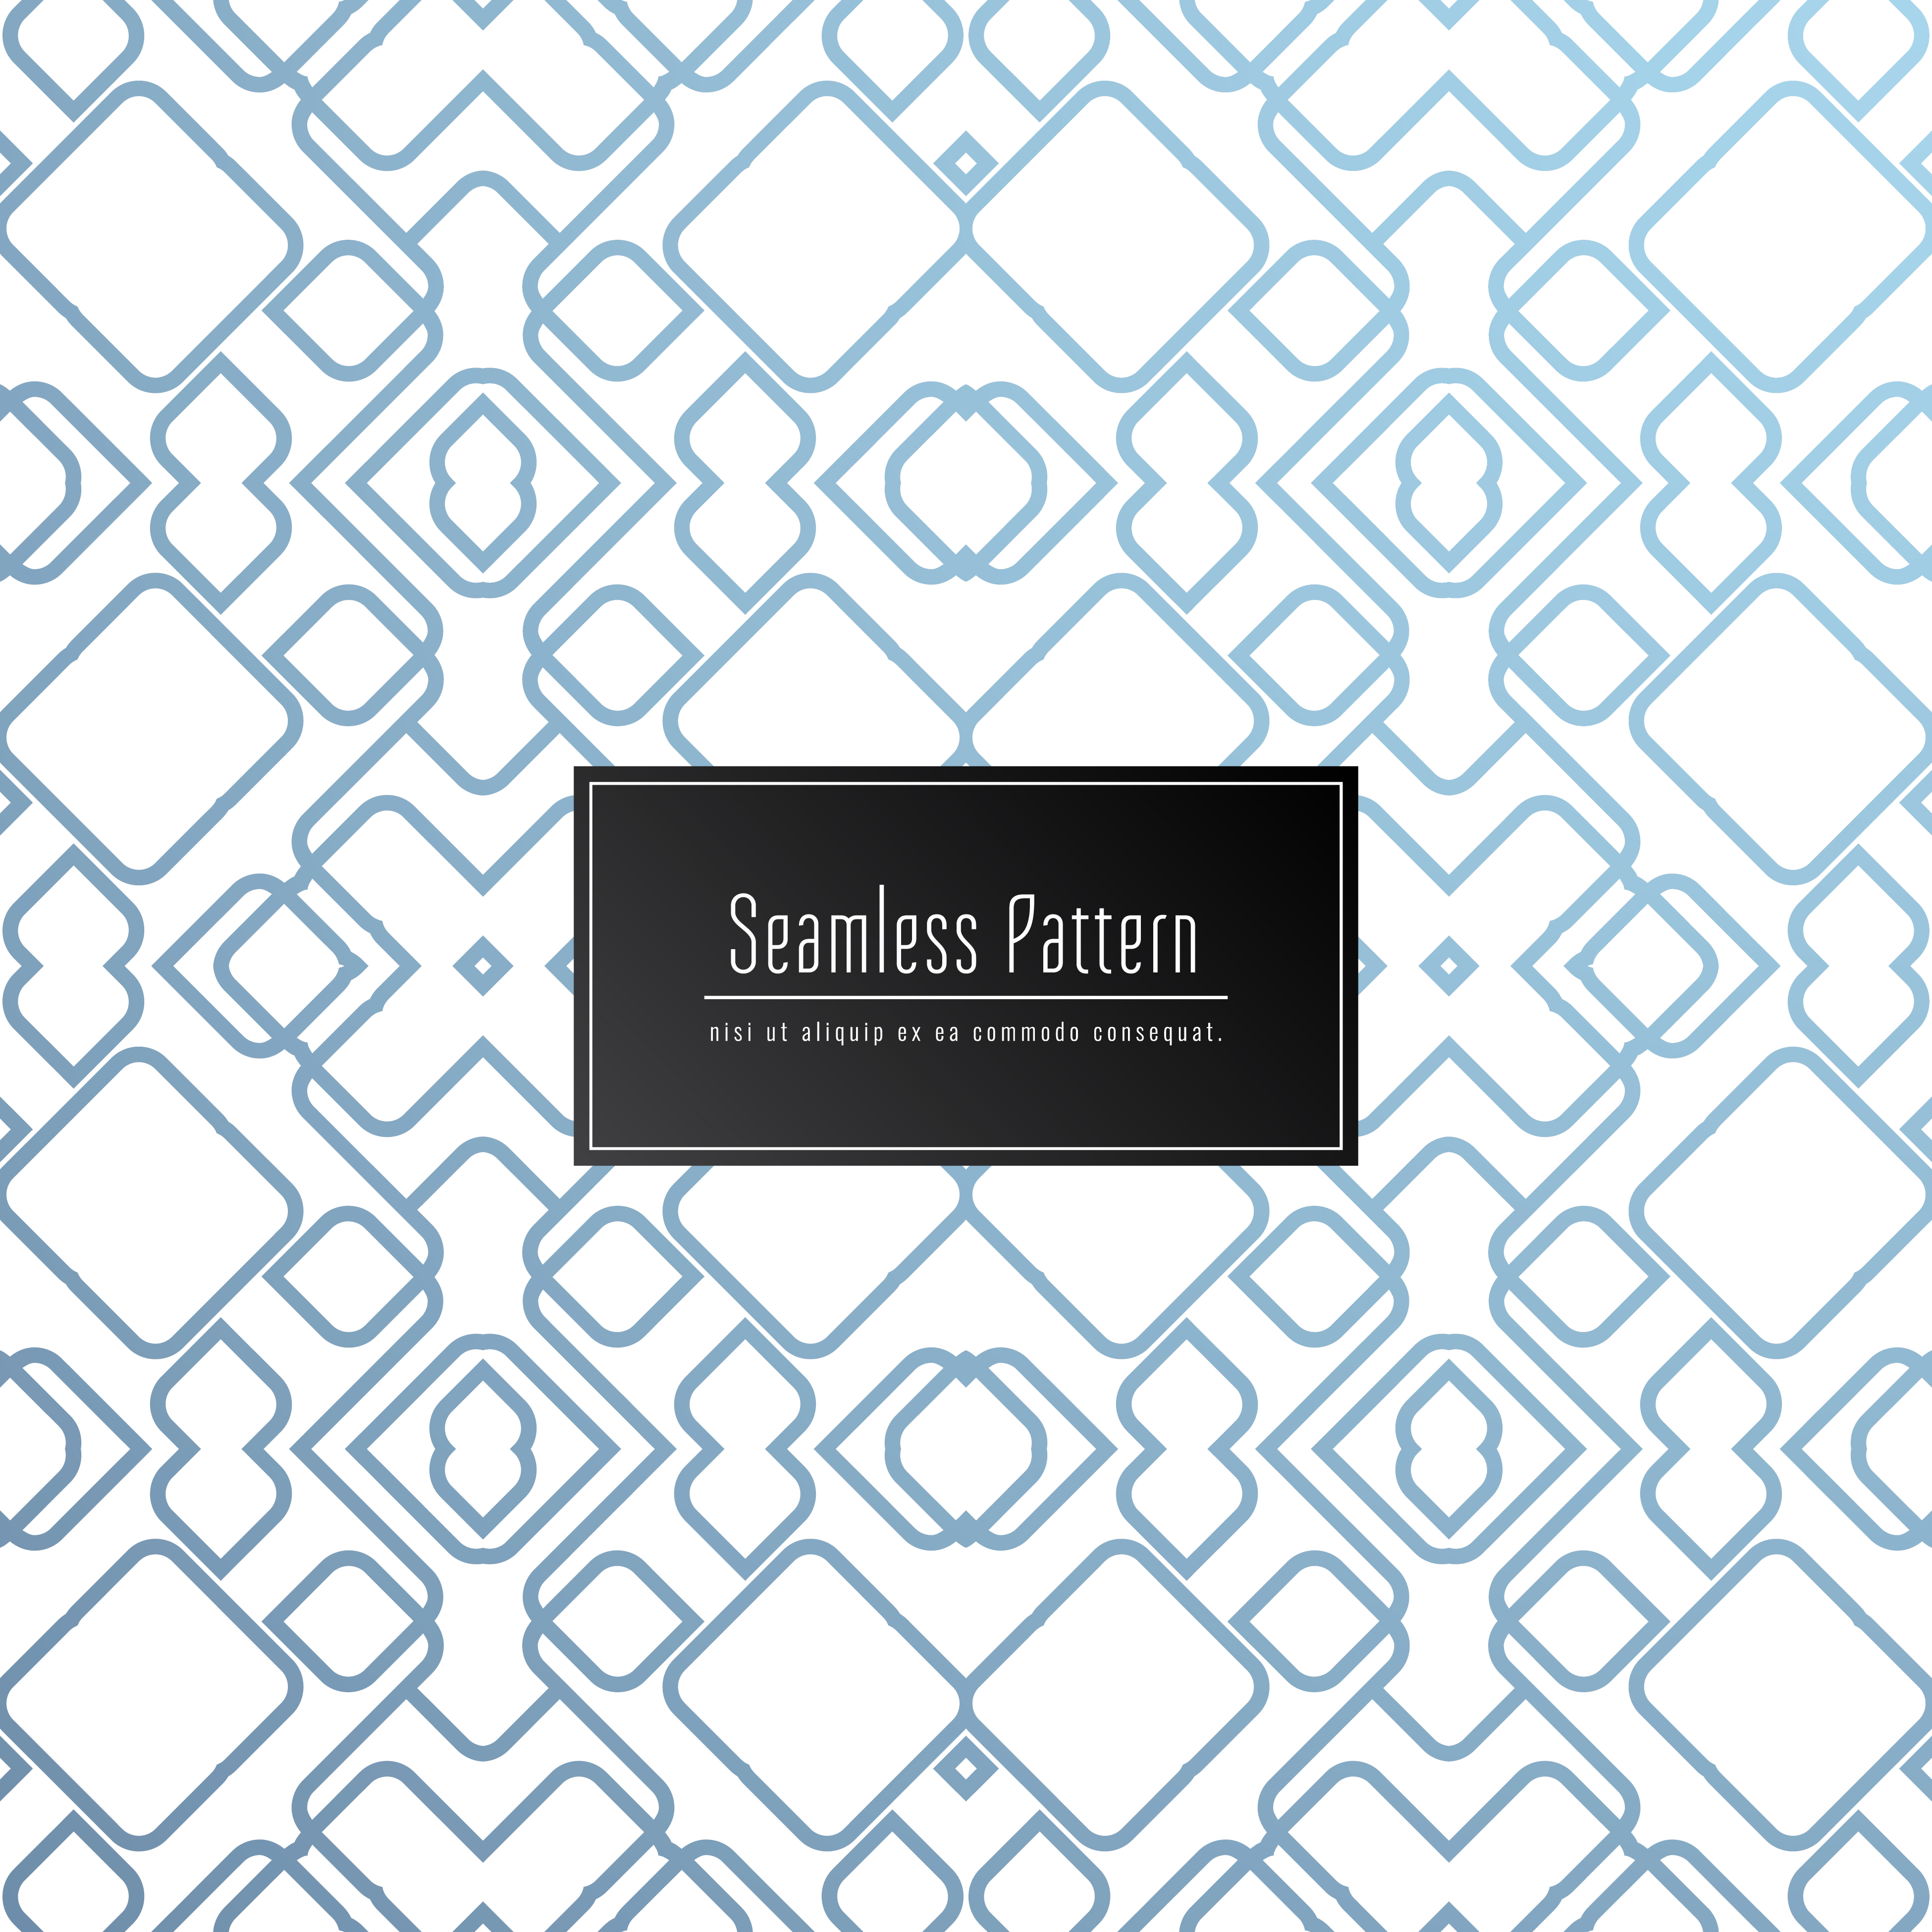 abstract geometric seamless pattern elegant background download Chevron Print abstract geometric seamless pattern elegant background download free vector art stock graphics images